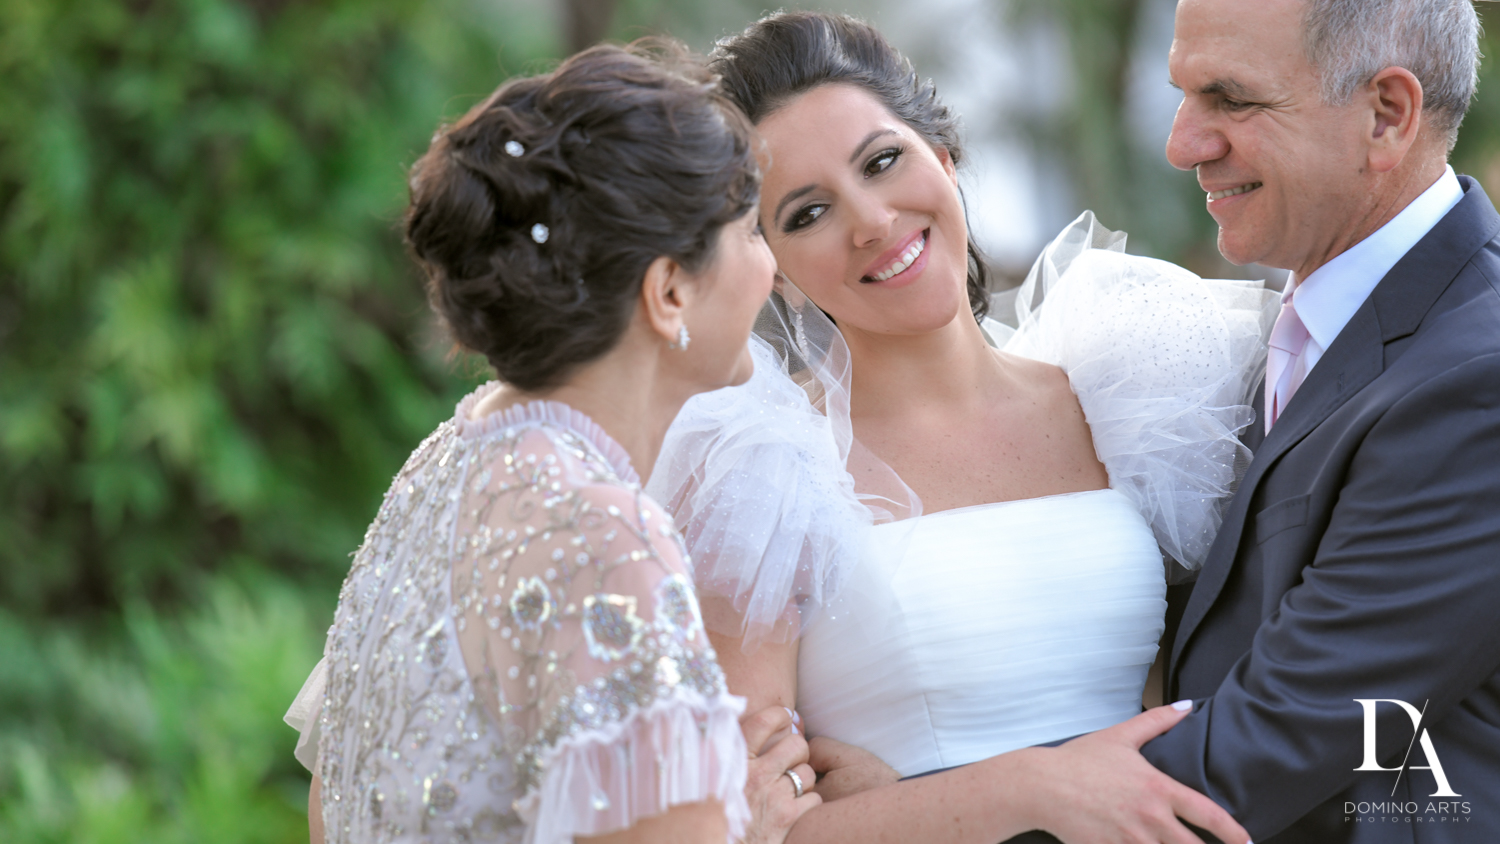 parents of the bride at Fairy-Tale Wedding at BNai Torah Boca Raton by Domino Arts Photography